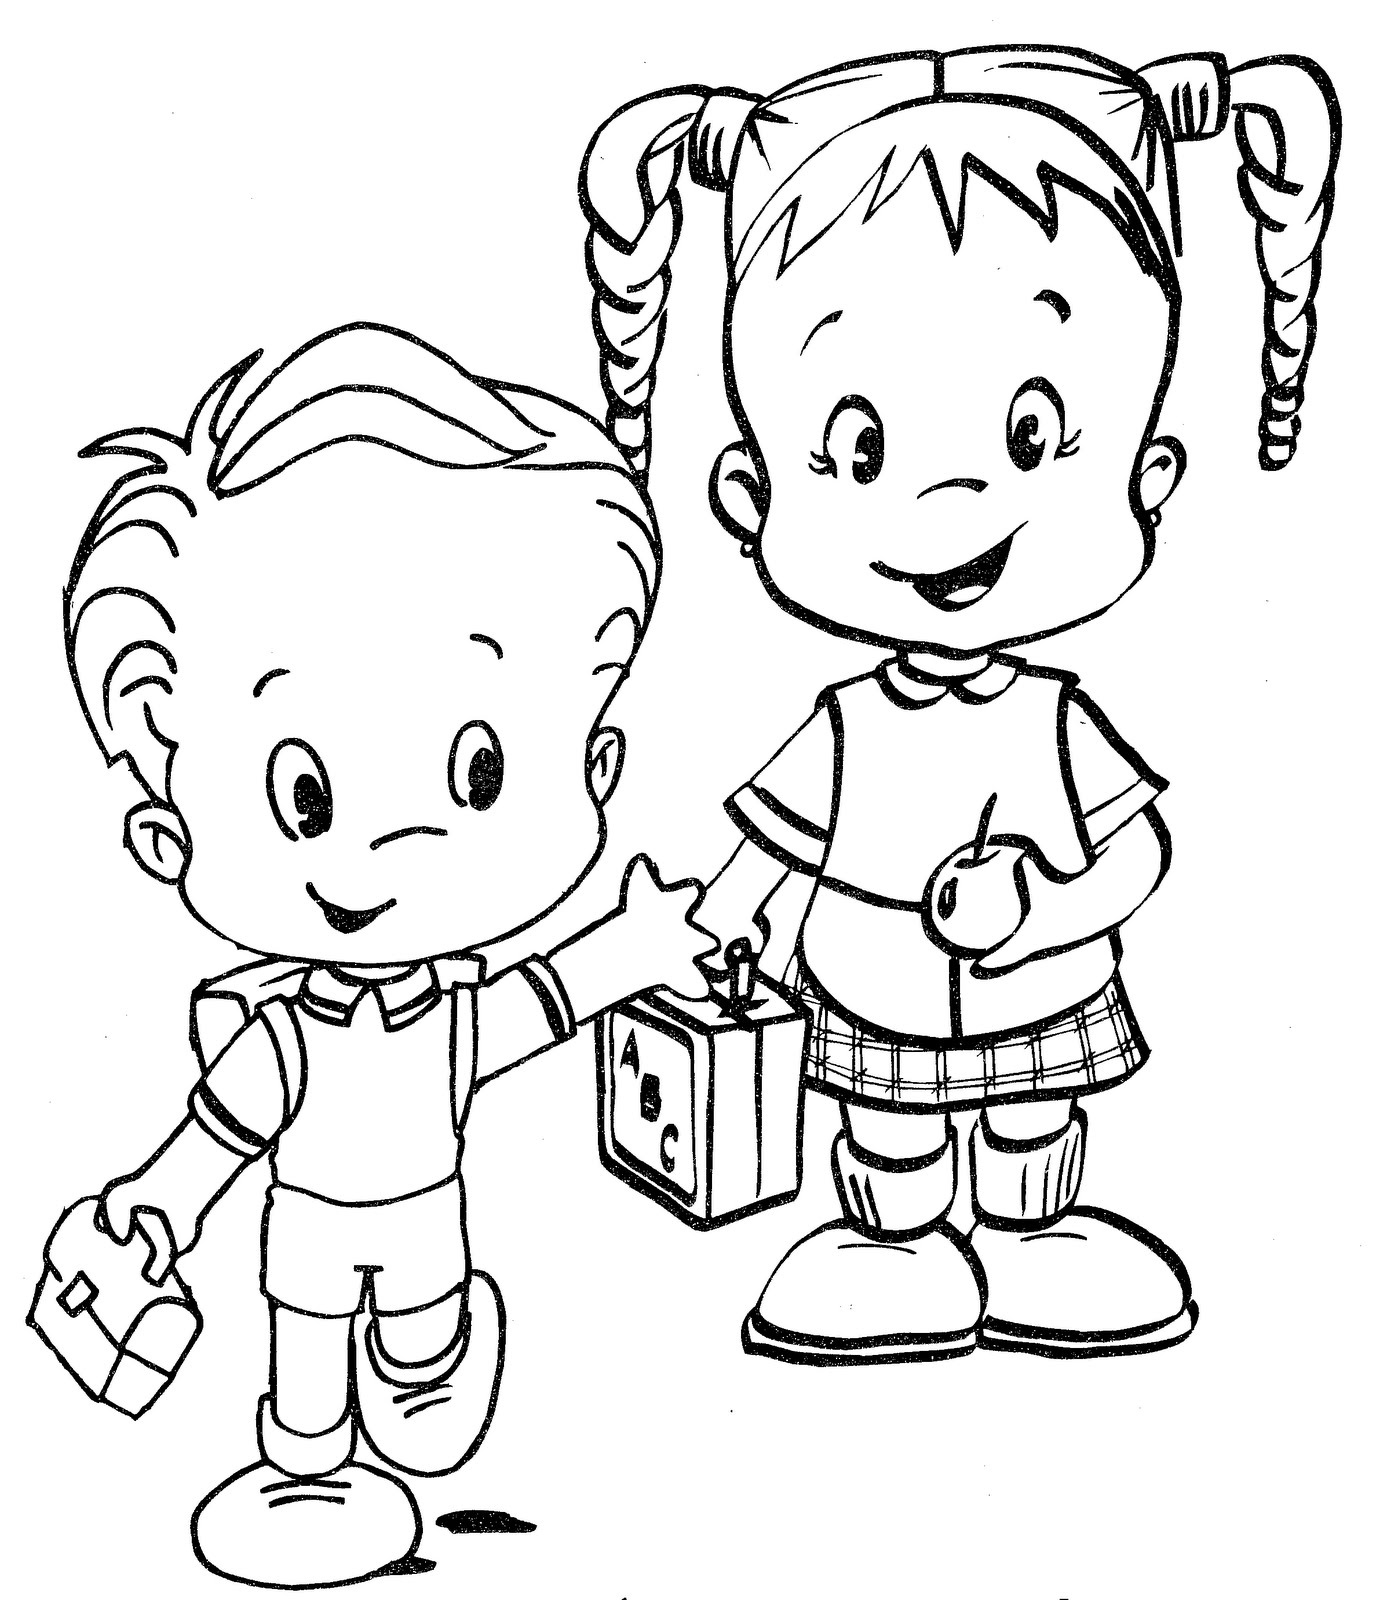 e coloring pages preschool - photo #28